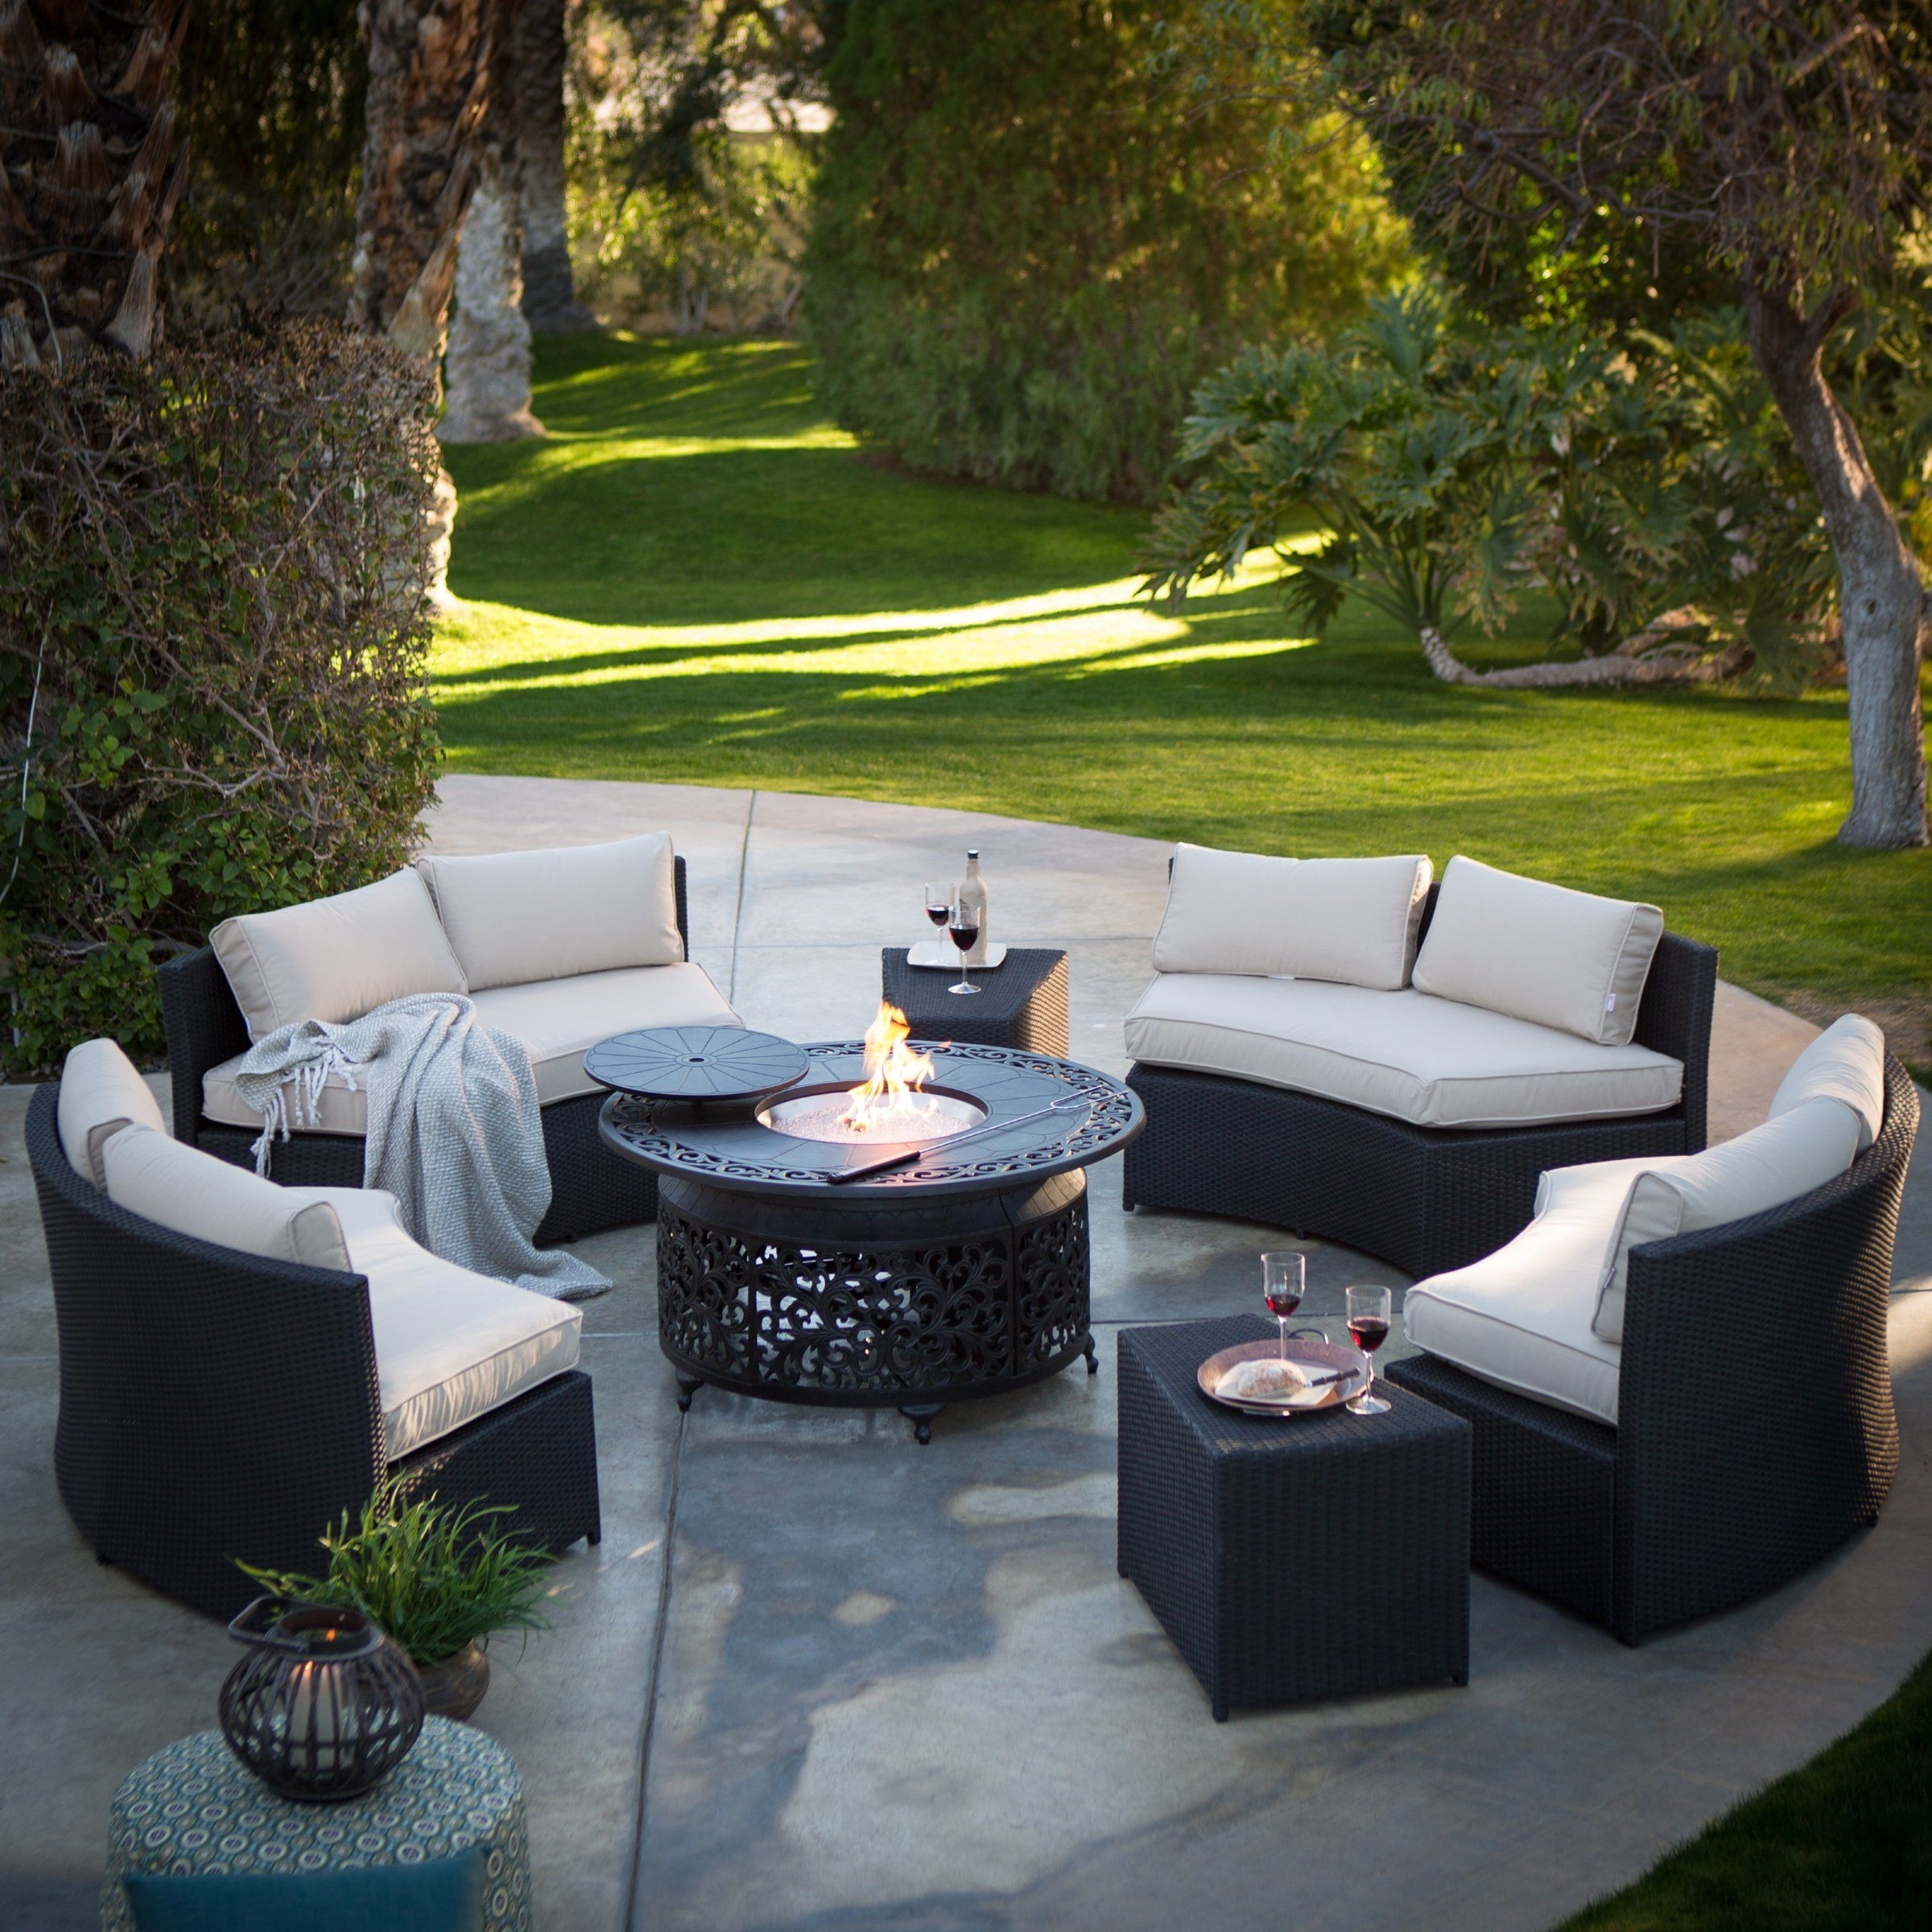 Favorite Patio Conversation Sets With Fire Pit Table Within Radiate Warm Fun With Friends And Family Whenever You Gather! This (View 5 of 20)